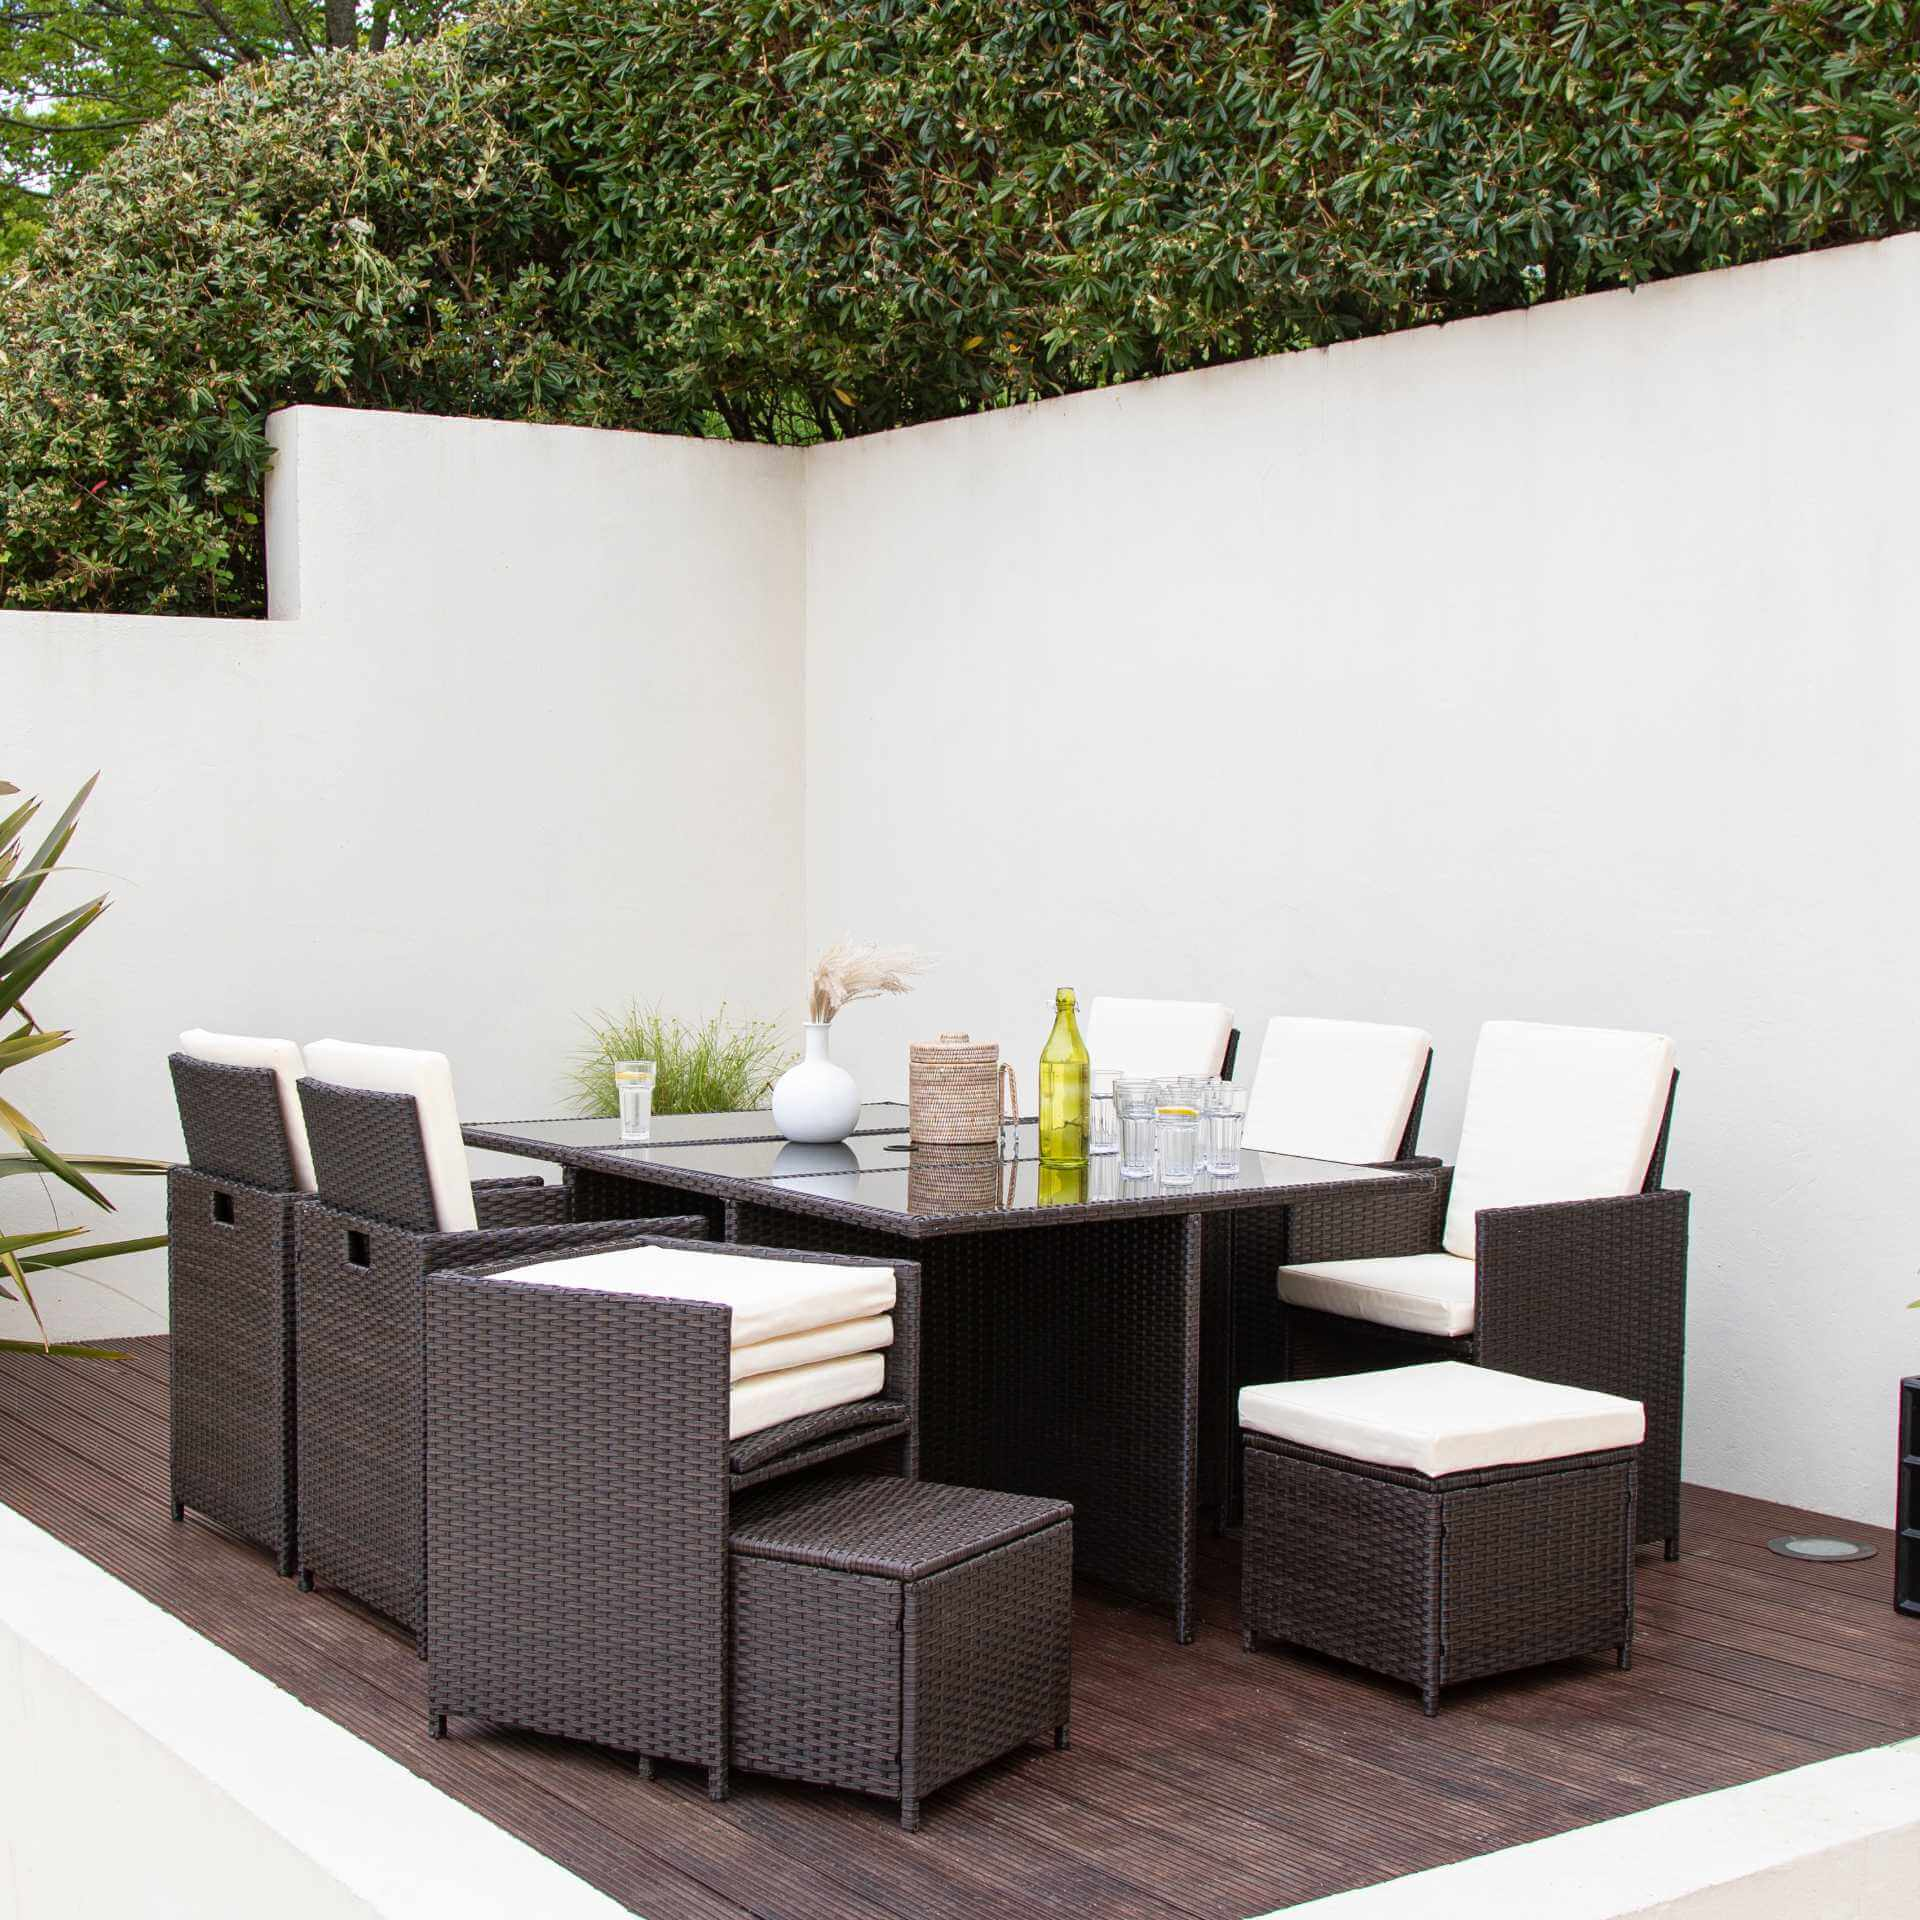 10 Seater Rattan Cube Outdoor Dining Set - Mixed Brown Weave - Laura James